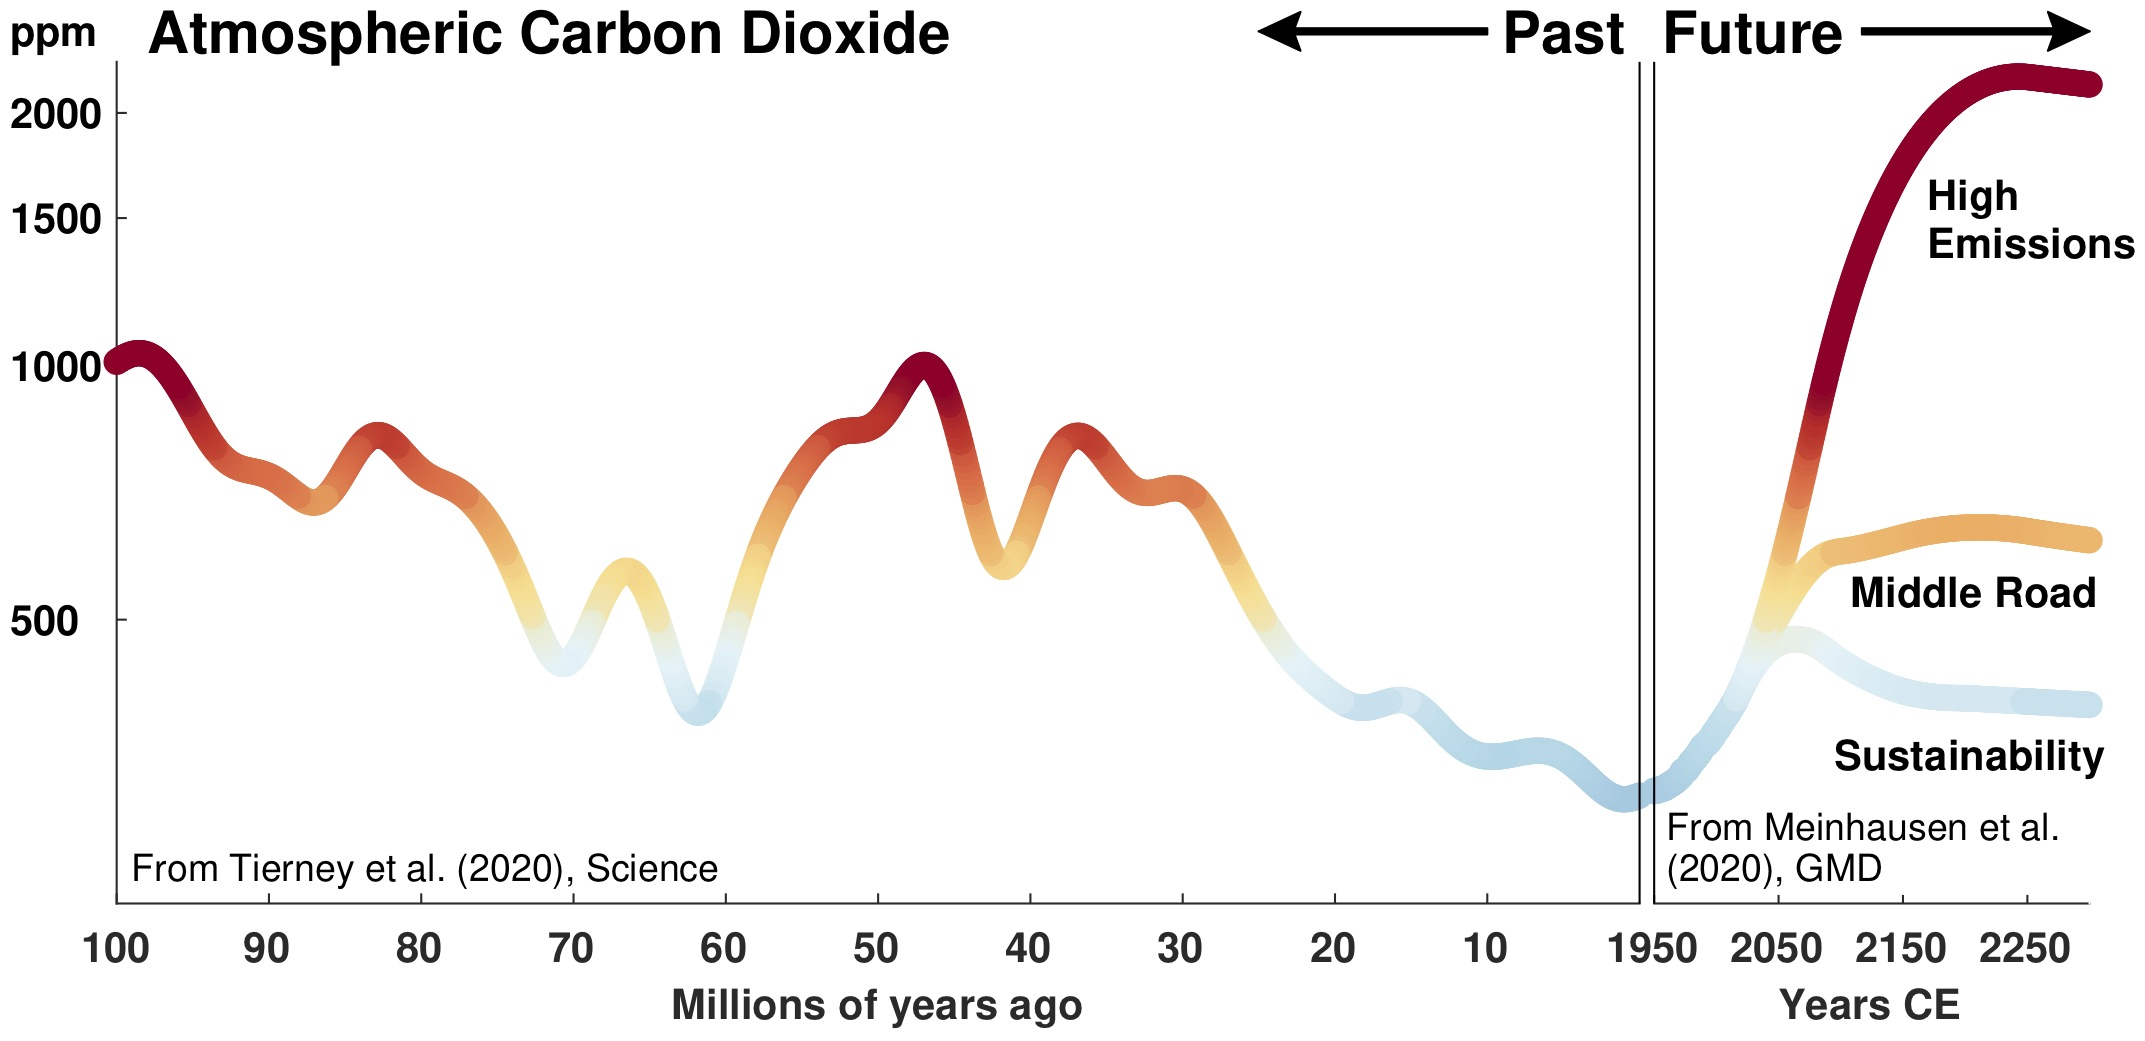 a graph that shows fluctuating levels of co2 going back 100 million years. it also shows projected levels of co2 a few hundred years in the future, which are much higher than previous appears on the graph. it also has projectsions for middle road emissions, which are more inline with the graph, and a sustainable projection, which is on the lower end compared to the rest of the graph